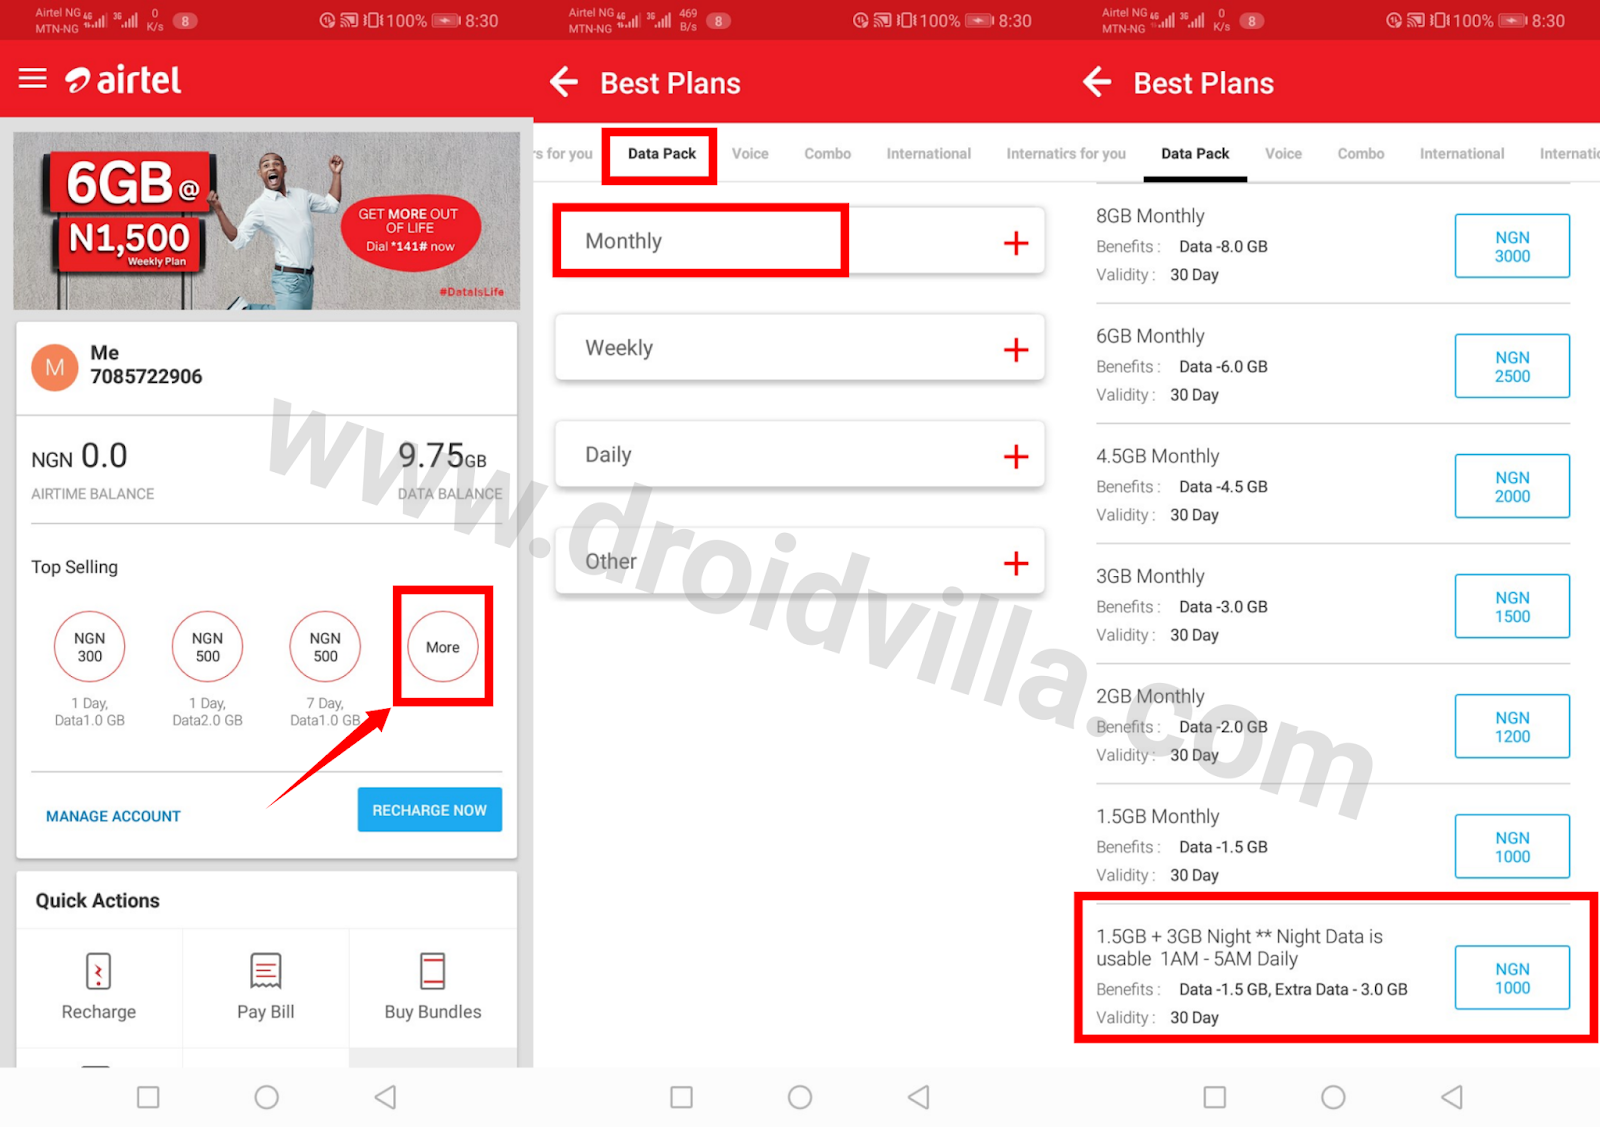 Cheap Airtel Data Offer: How To Subscribe Airtel 9gig for N1000 valid for 30days